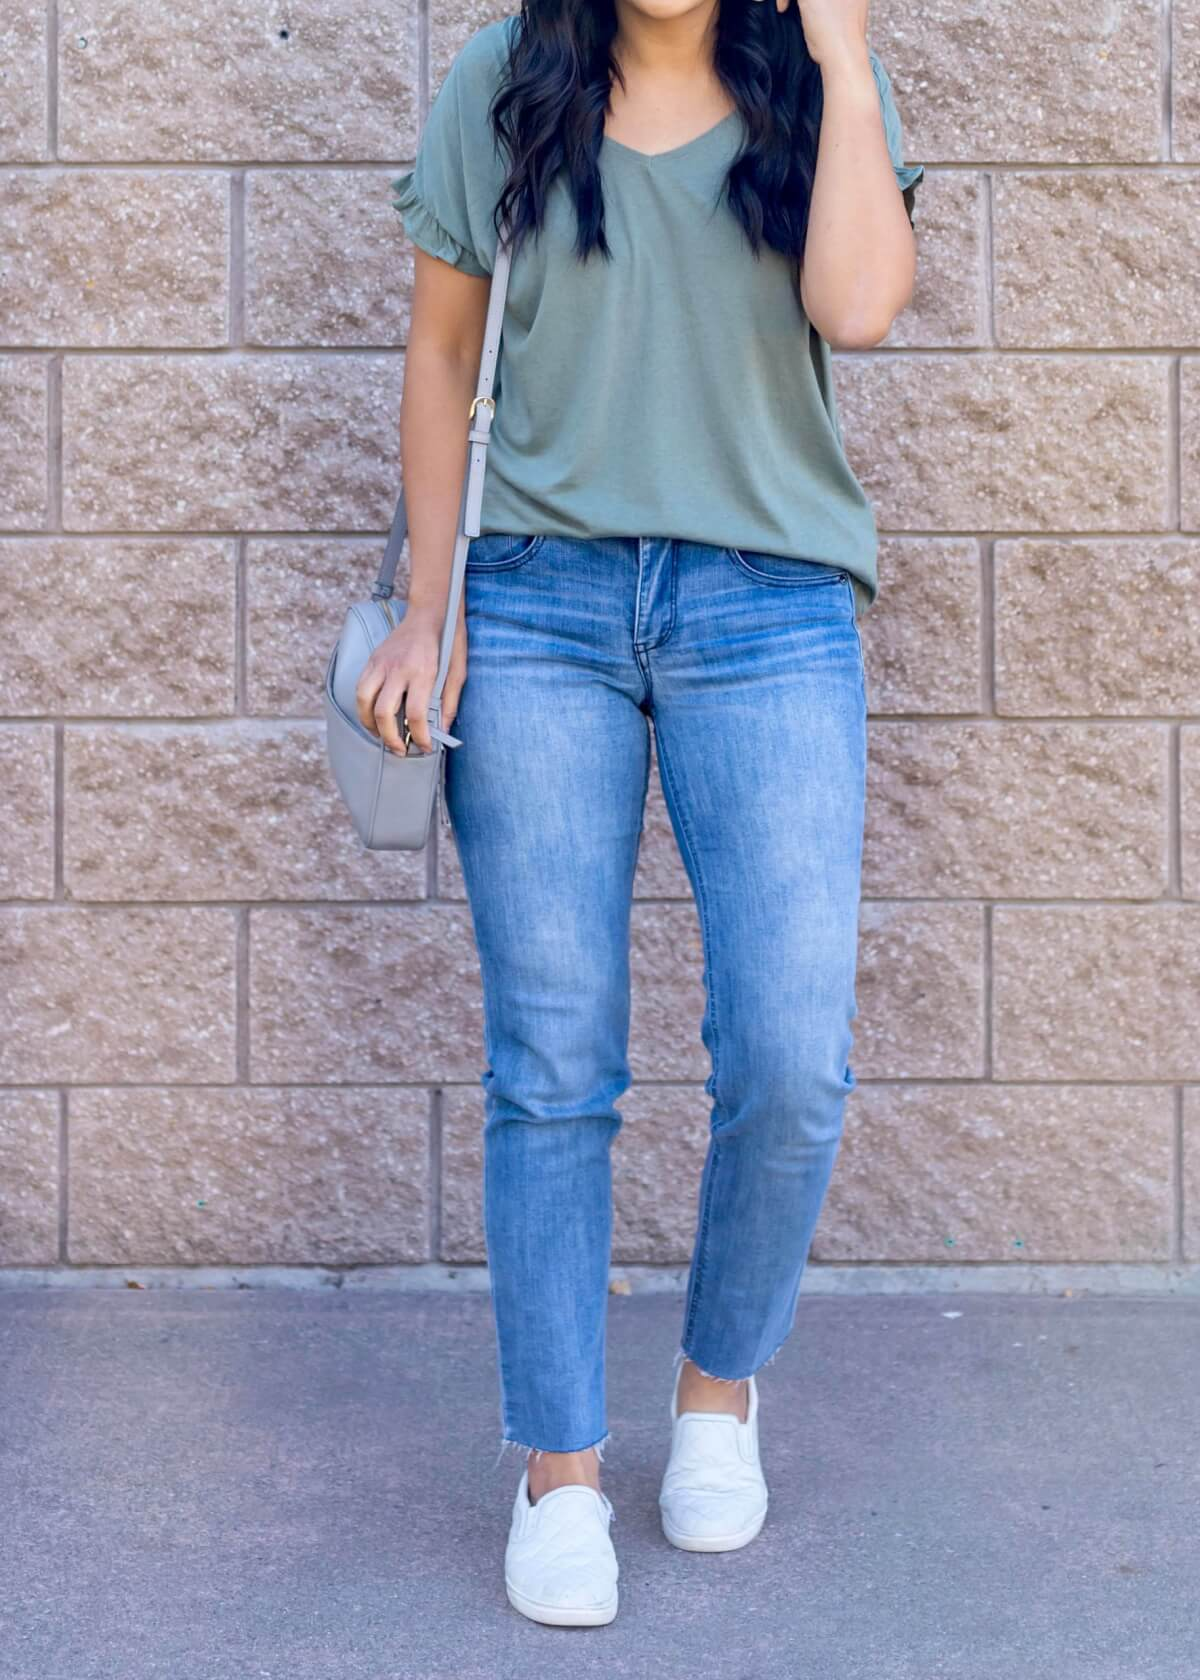 Casual Early Fall Outfit: sage green ruffle sleeve t-shirt + light blue straight leg raw hem jeans + white slip-on sneakers + gray crossbody bag close up